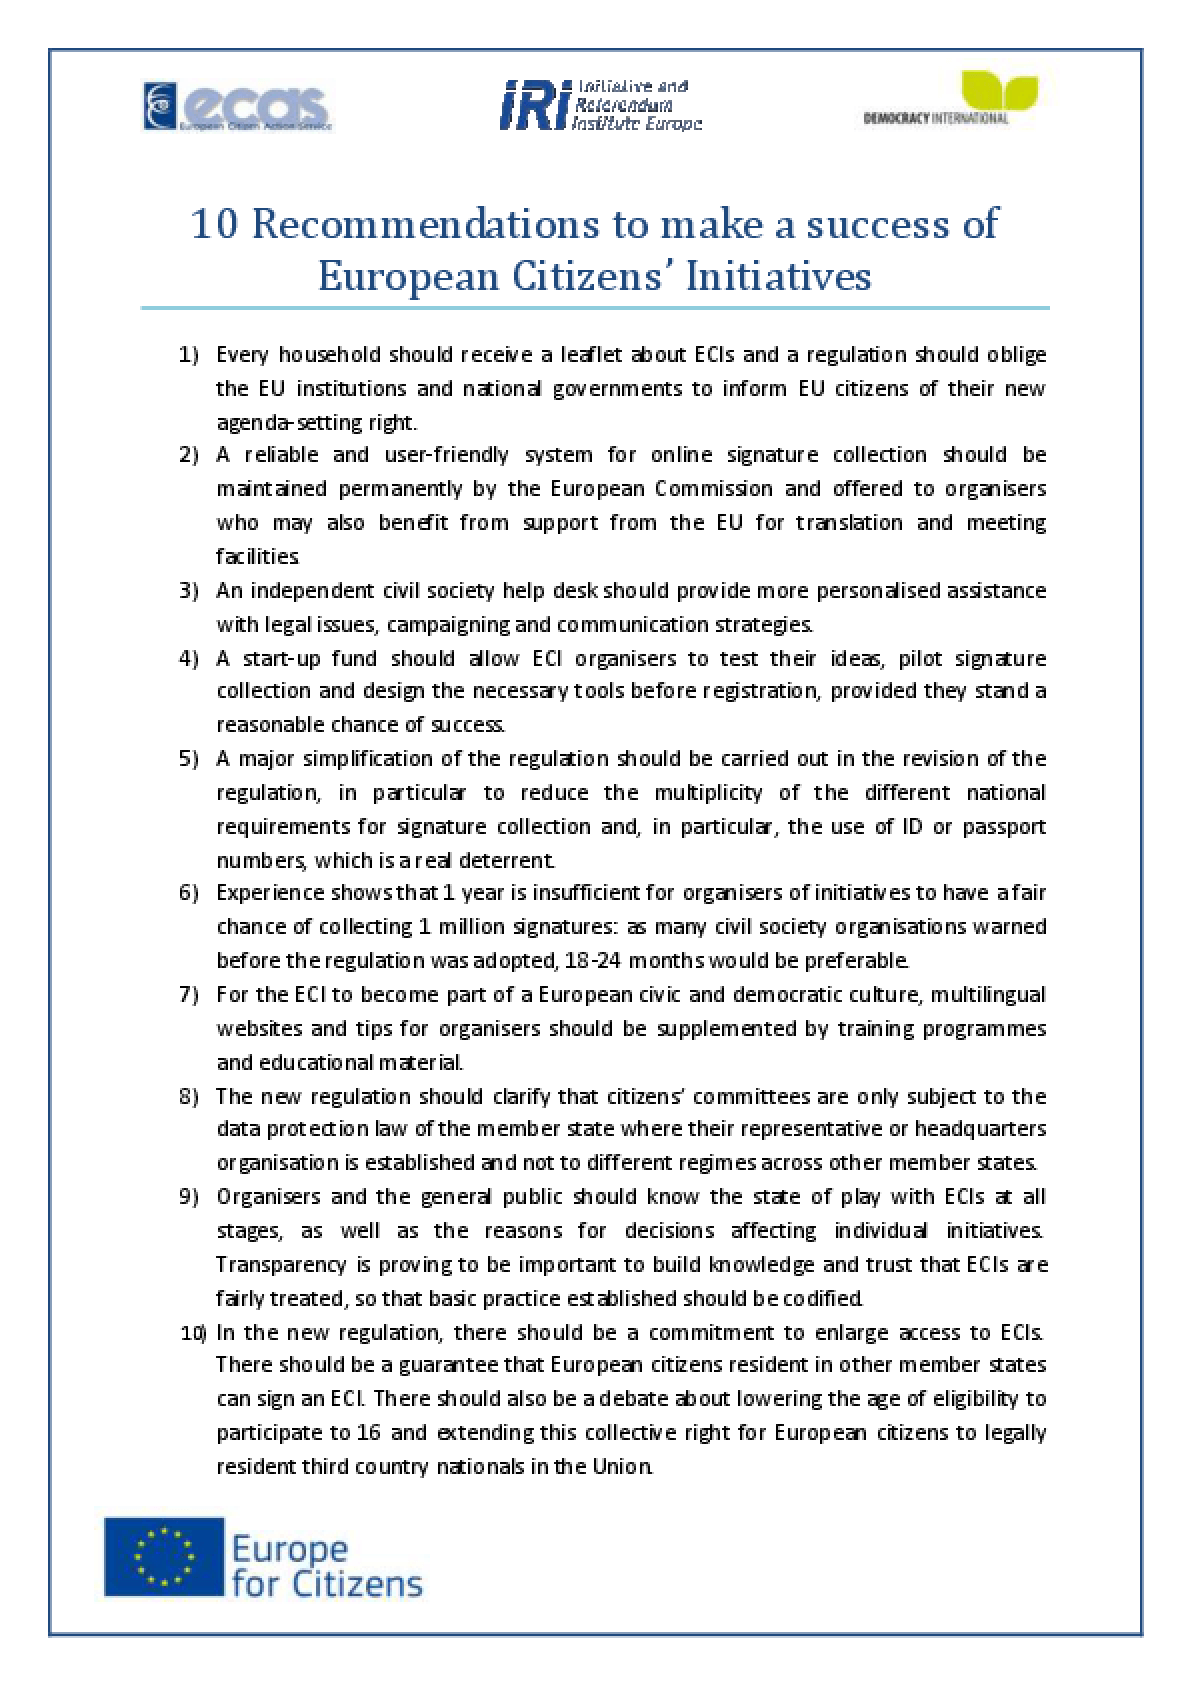 10 Recommendations to Make a Success of European Citizens' Initiatives